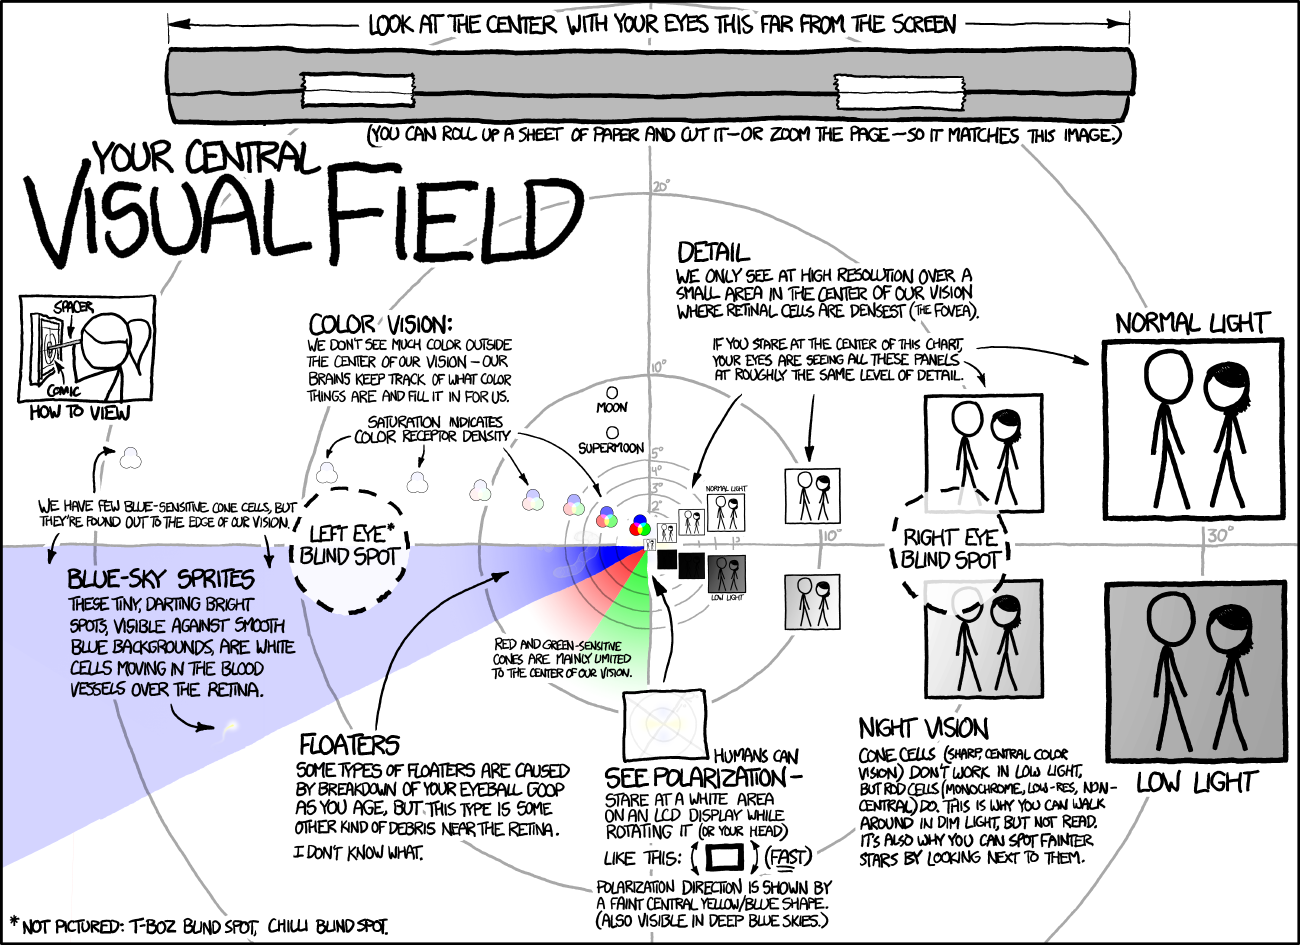 IMAGE(http://imgs.xkcd.com/comics/visual_field_large.png)